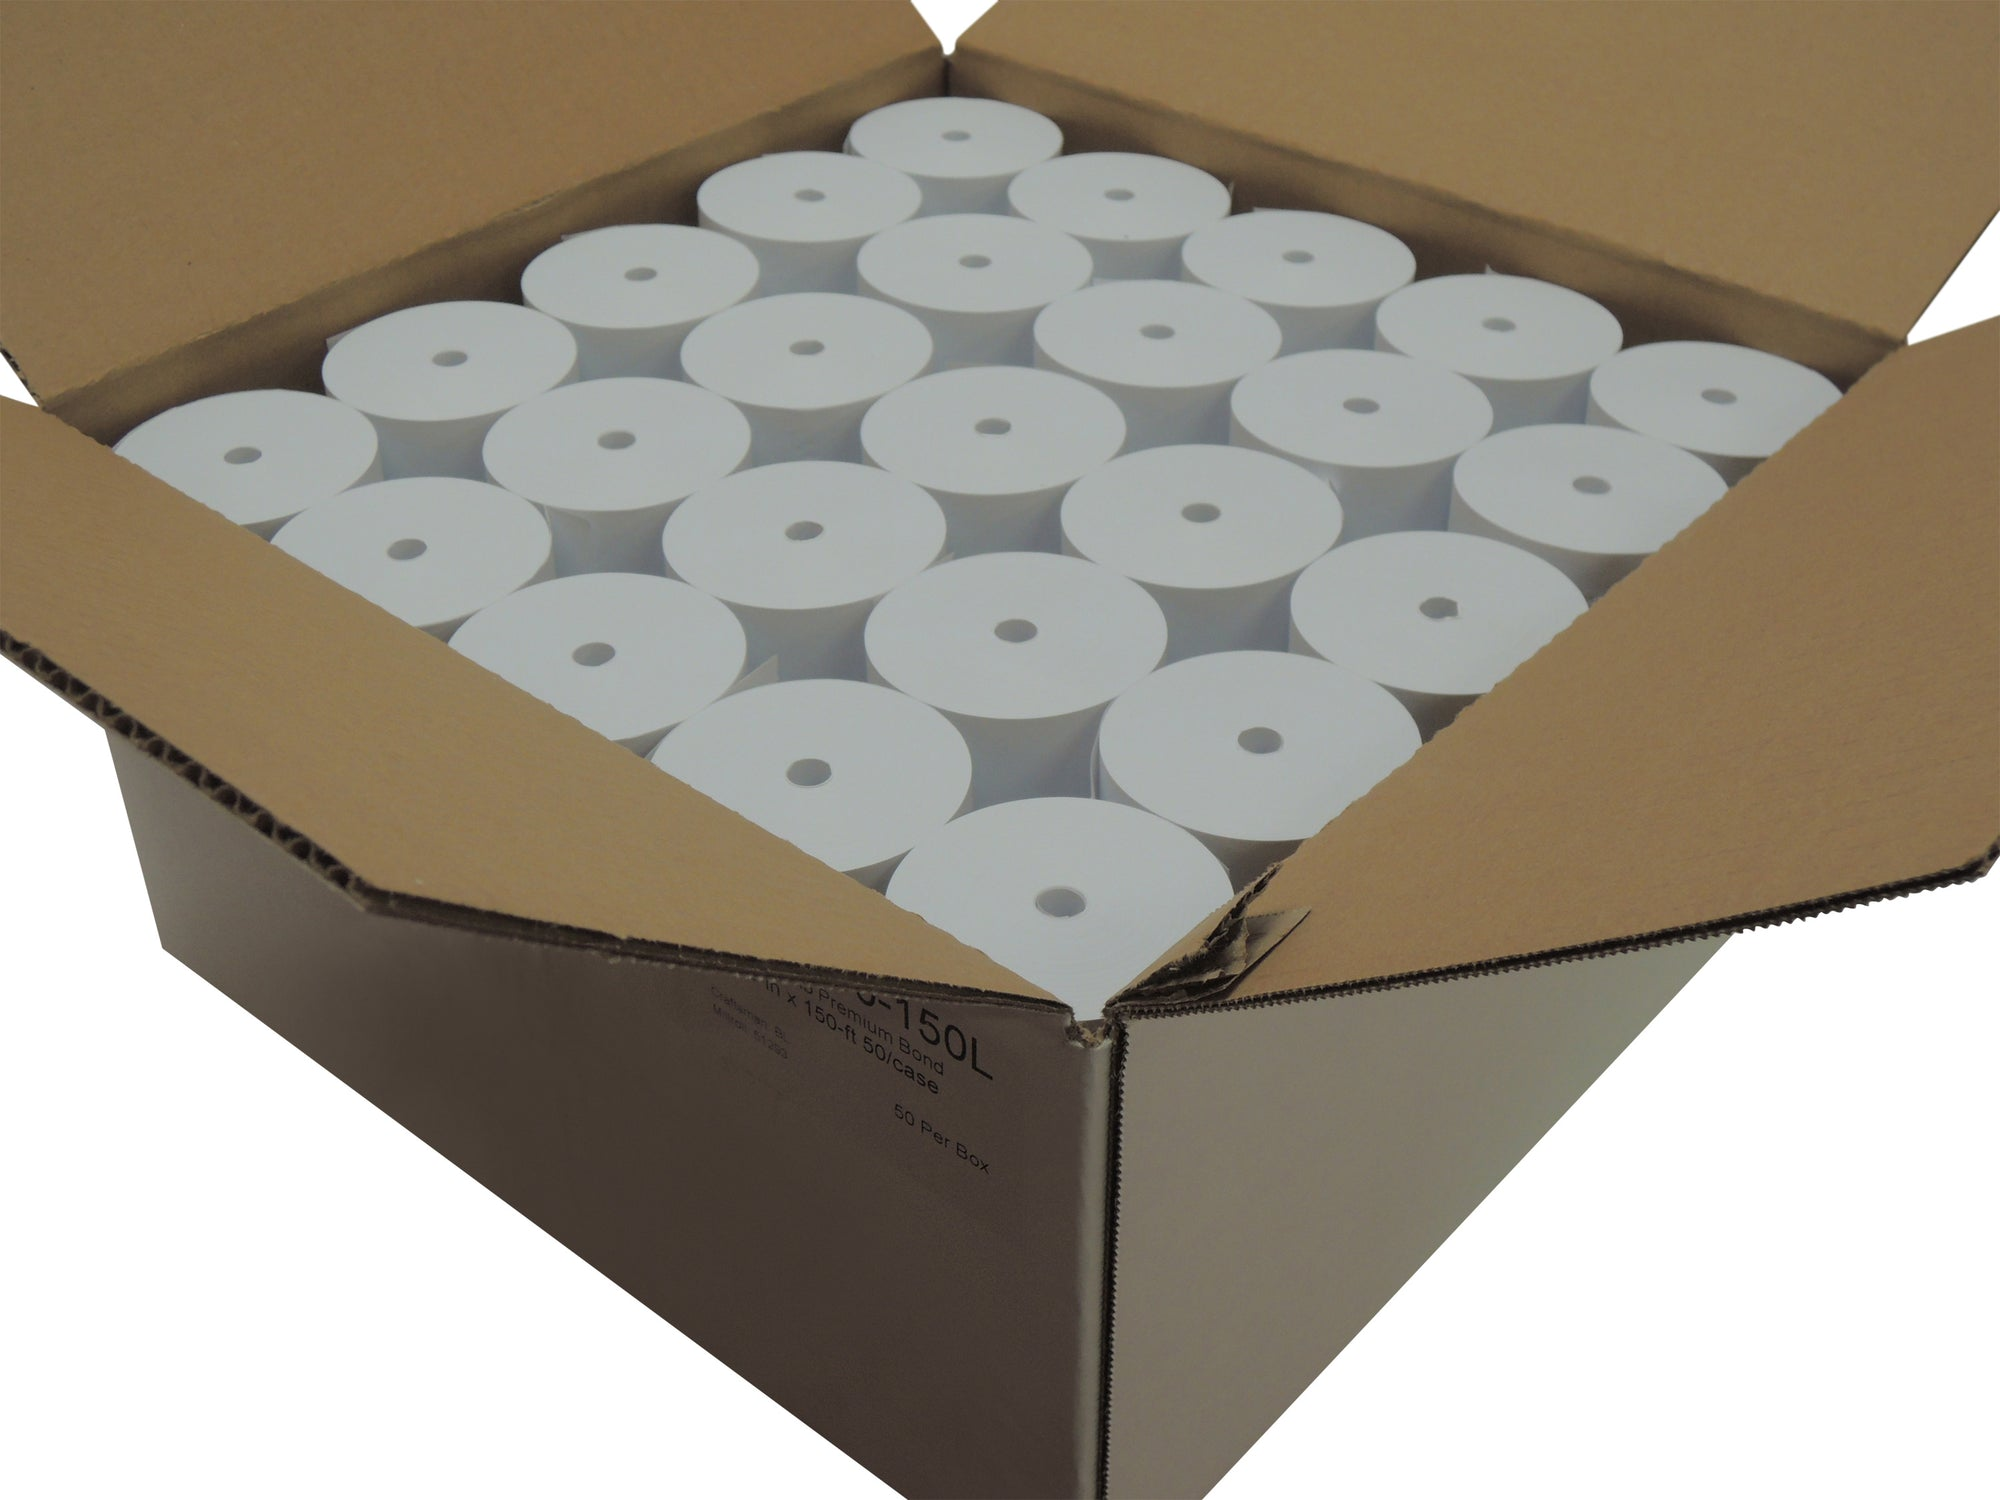 POS1 1 Ply Bond Roll 2 1/4 x 150 ft CORELESS Bright White